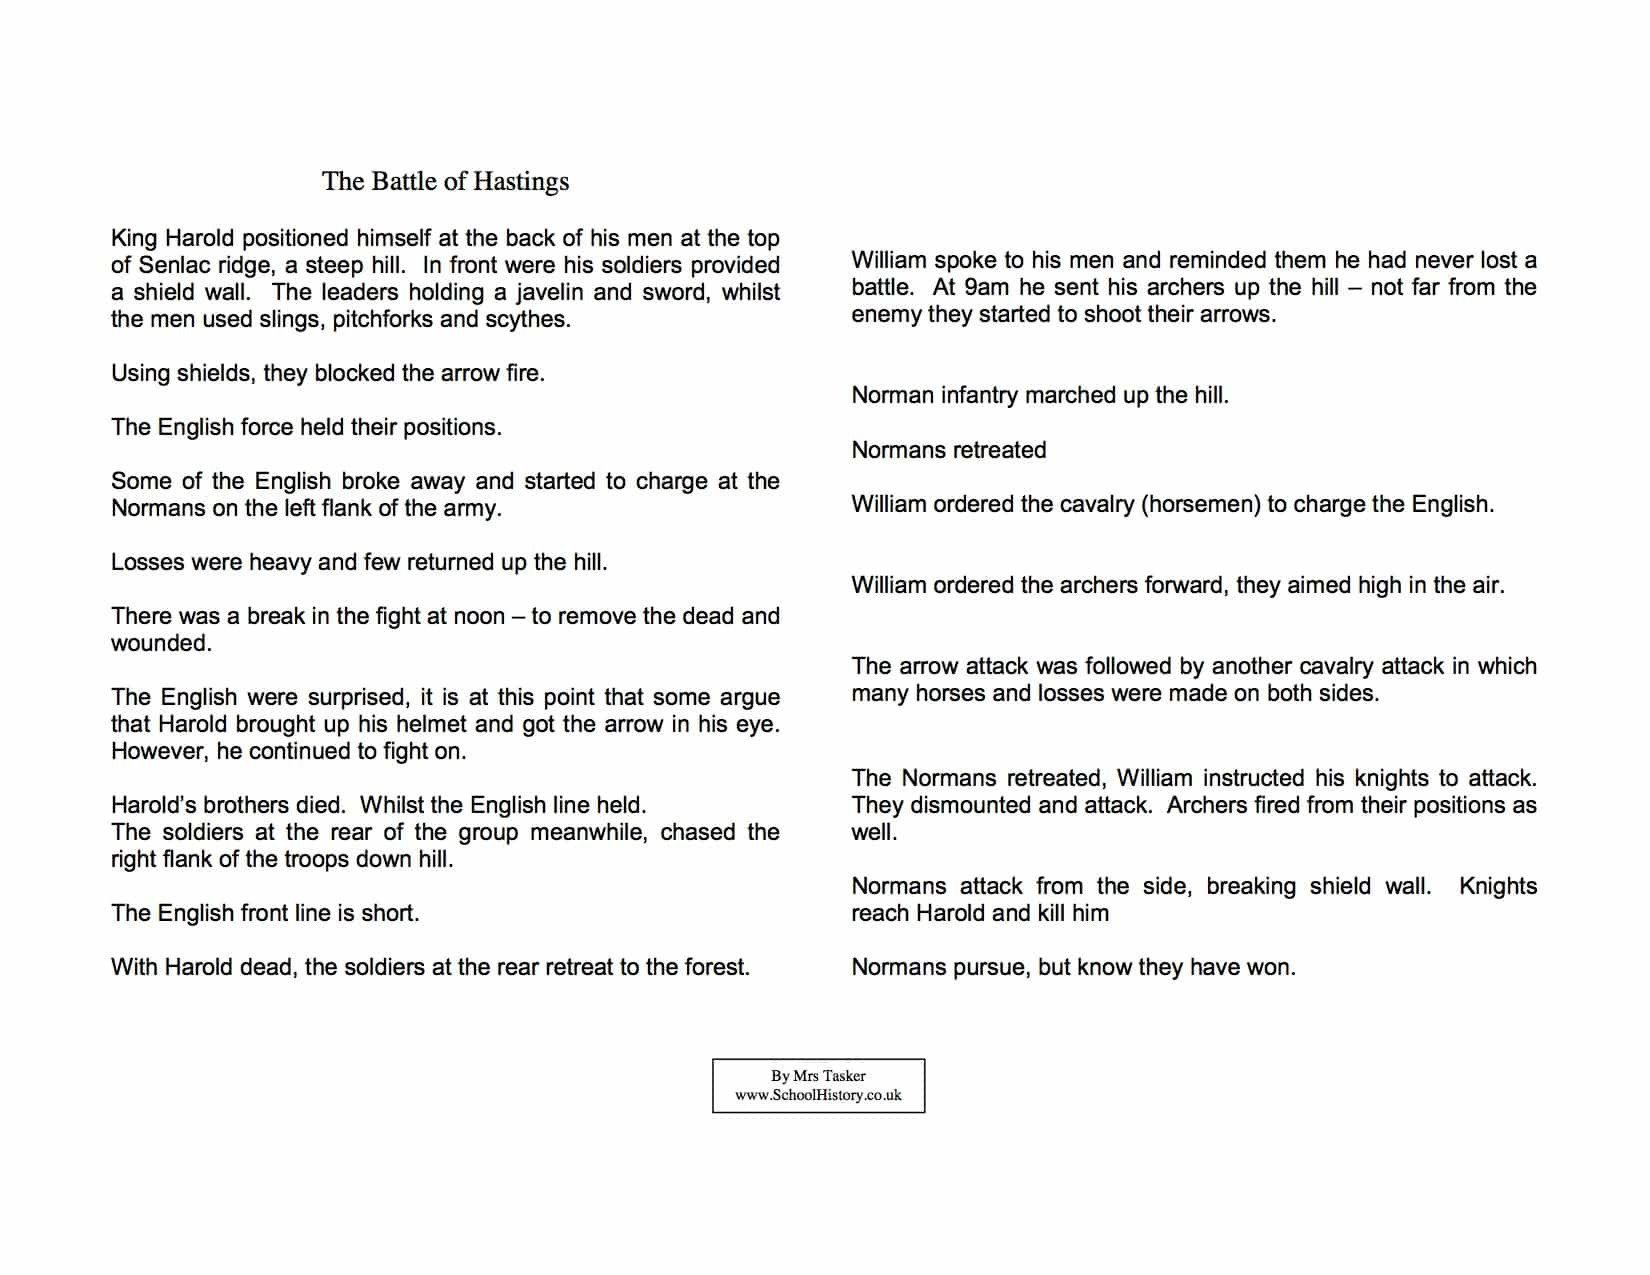 Sequence Of events Worksheets Pdf the Battle Of Hastings Sequence Of events Pdf Worksheet